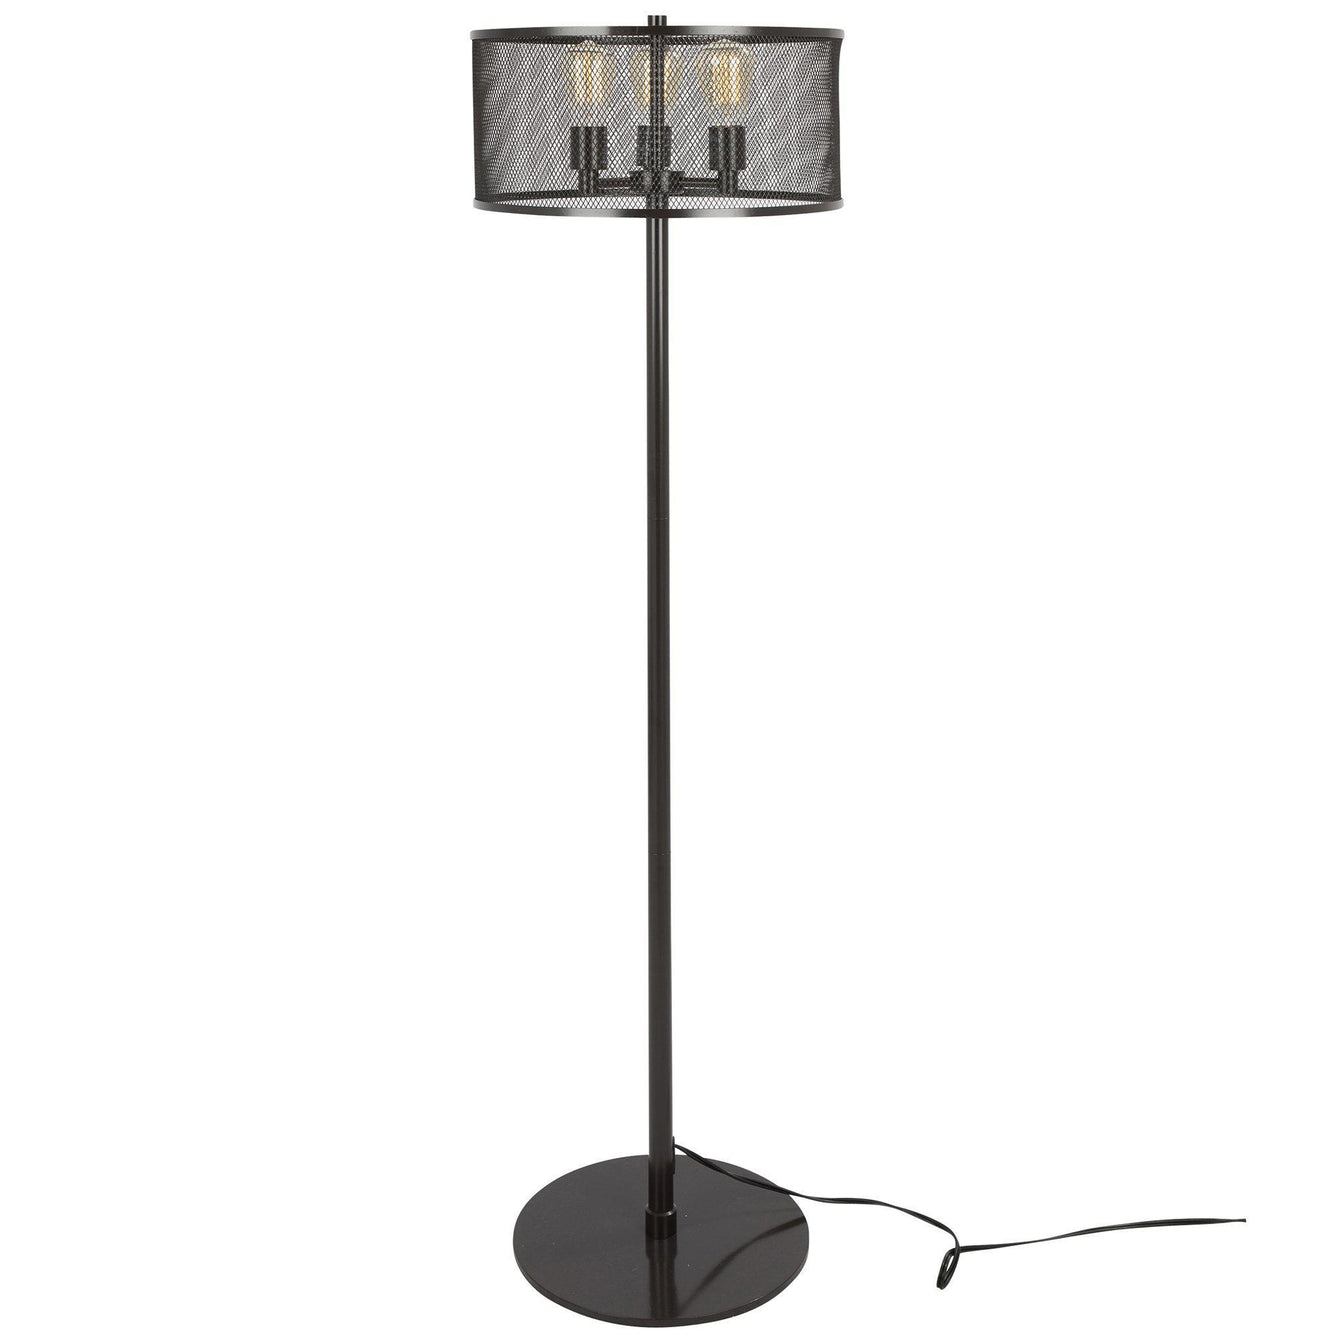 Indy Mesh Industrial Floor Lamp in Antique-Home - Lighting - Floor Lamps-LUMISOURCE-Peccadilly